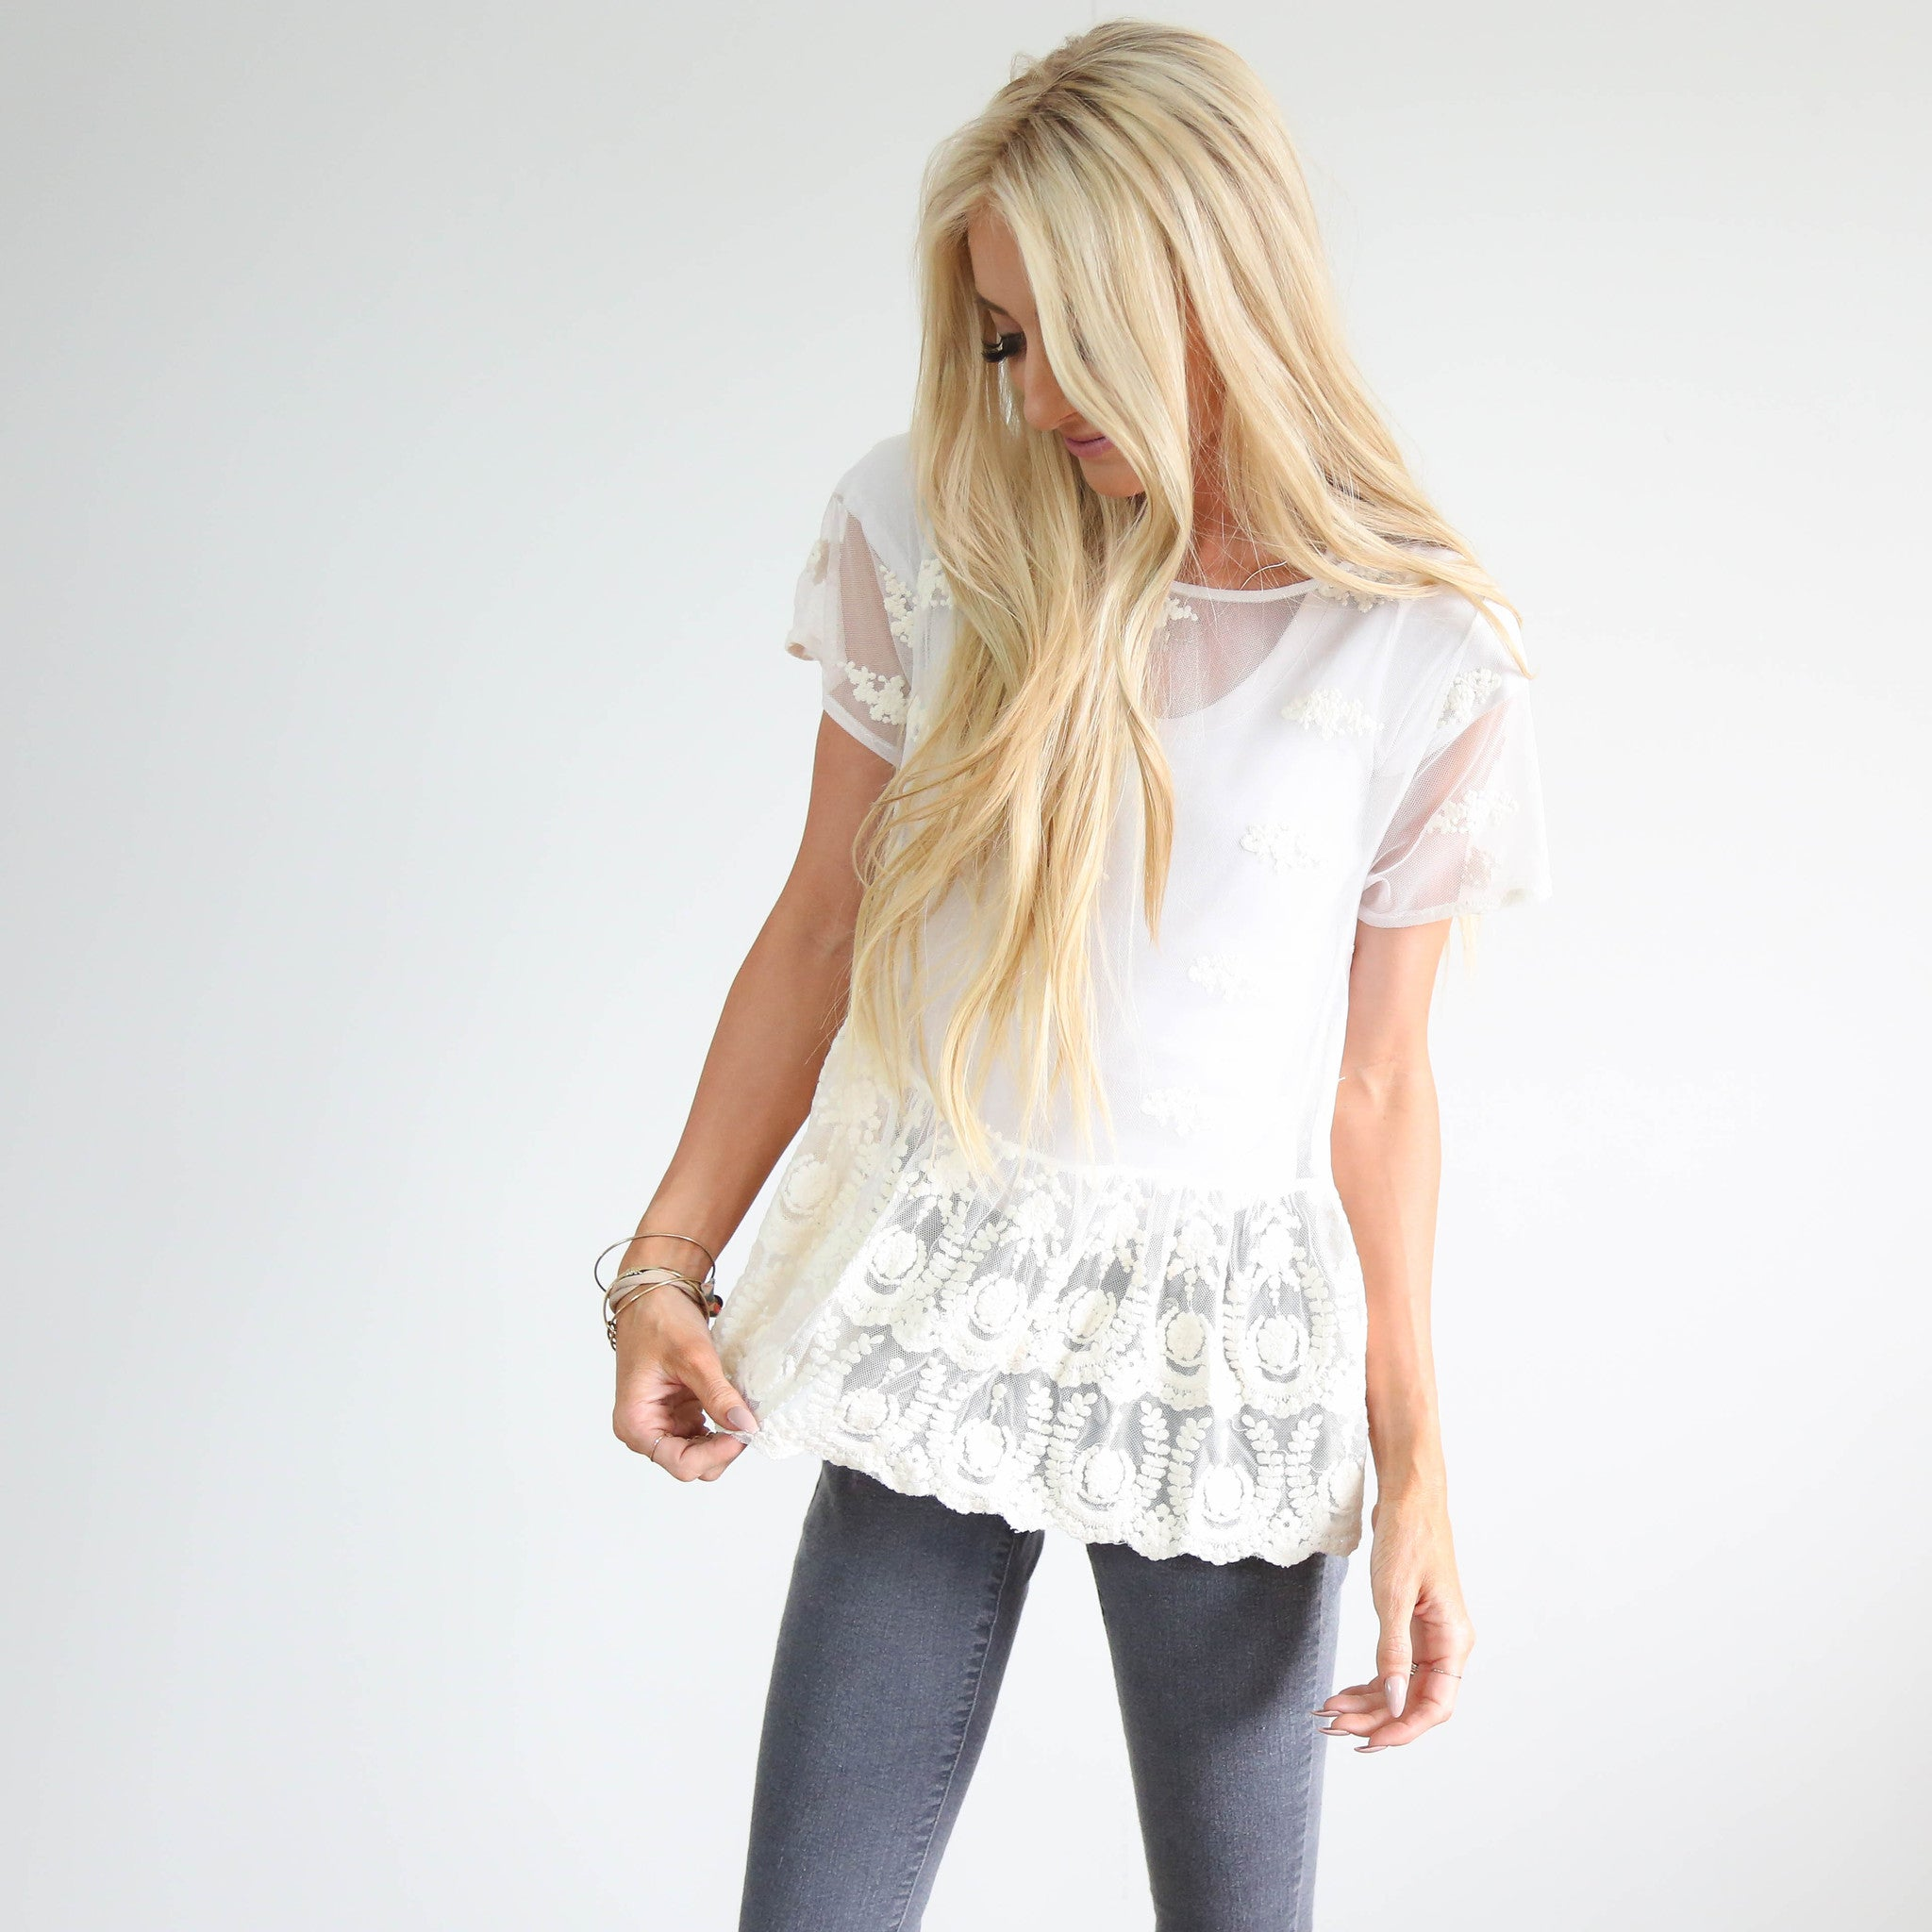 S & Co. Ivory Lace Top